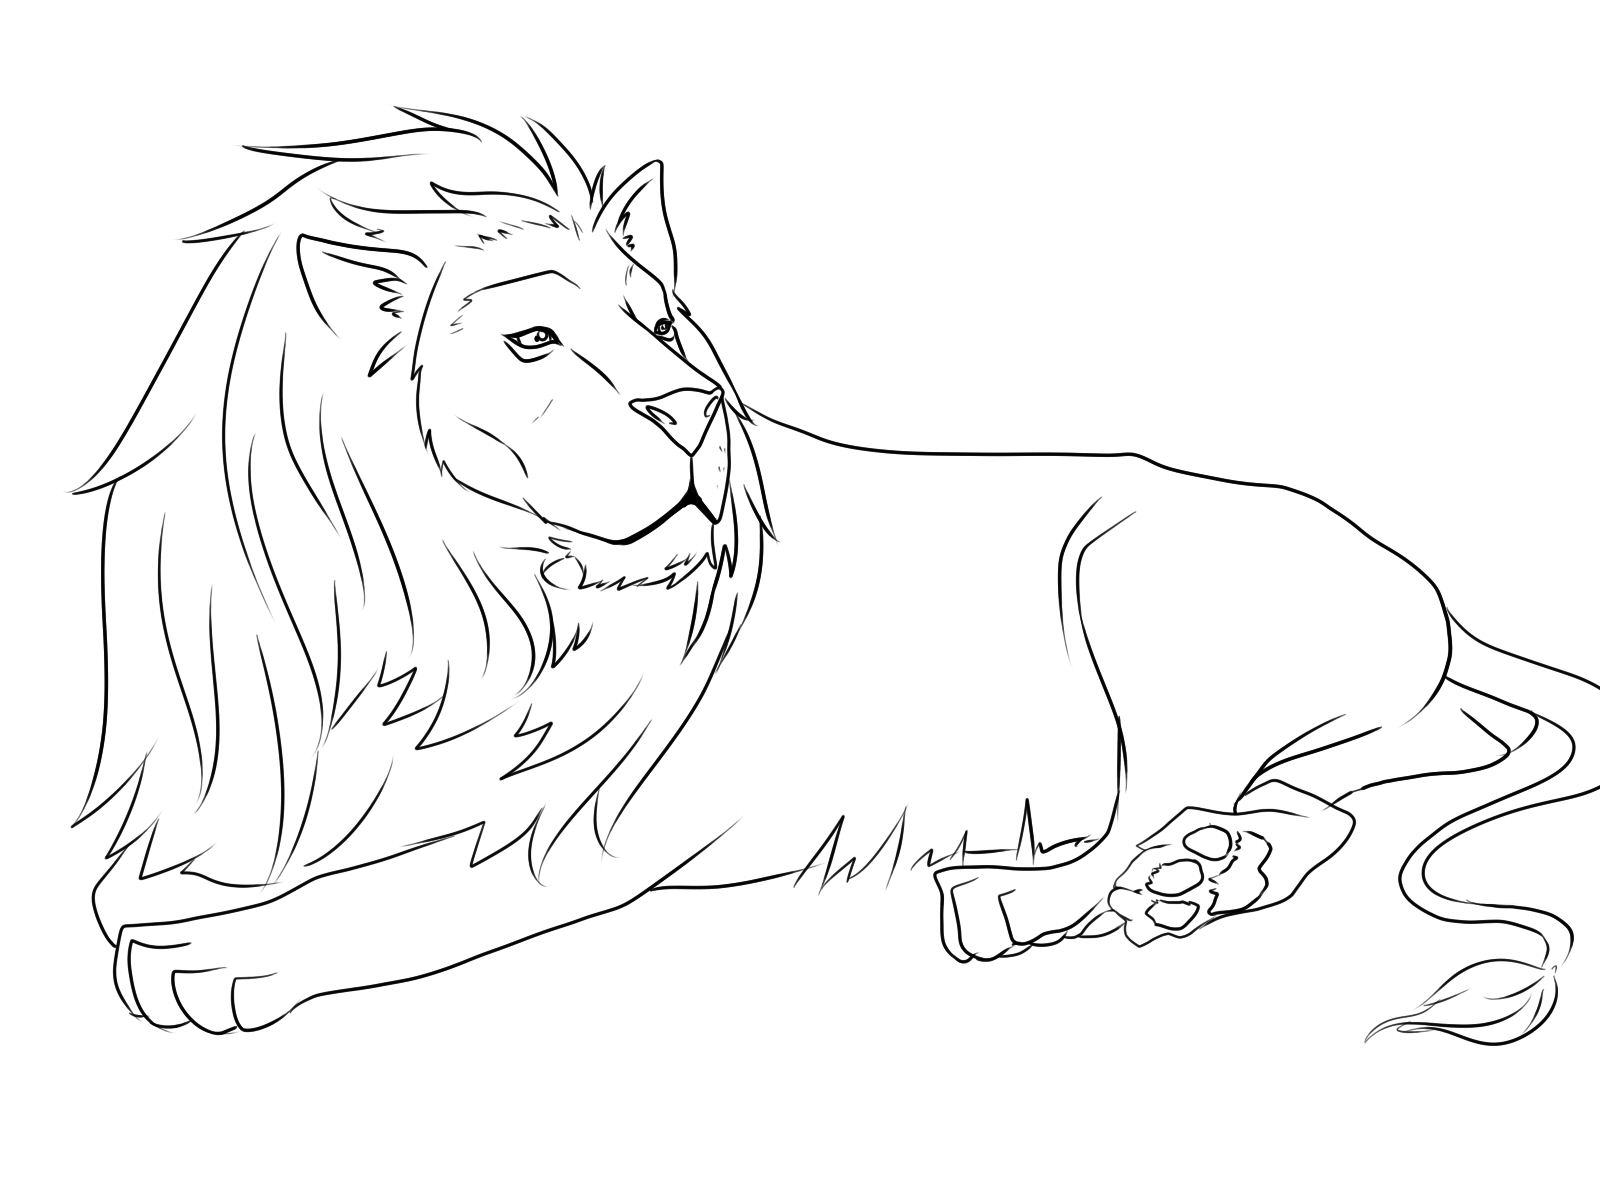 coloring page of a lion lion king coloring pages best coloring pages for kids lion coloring a page of